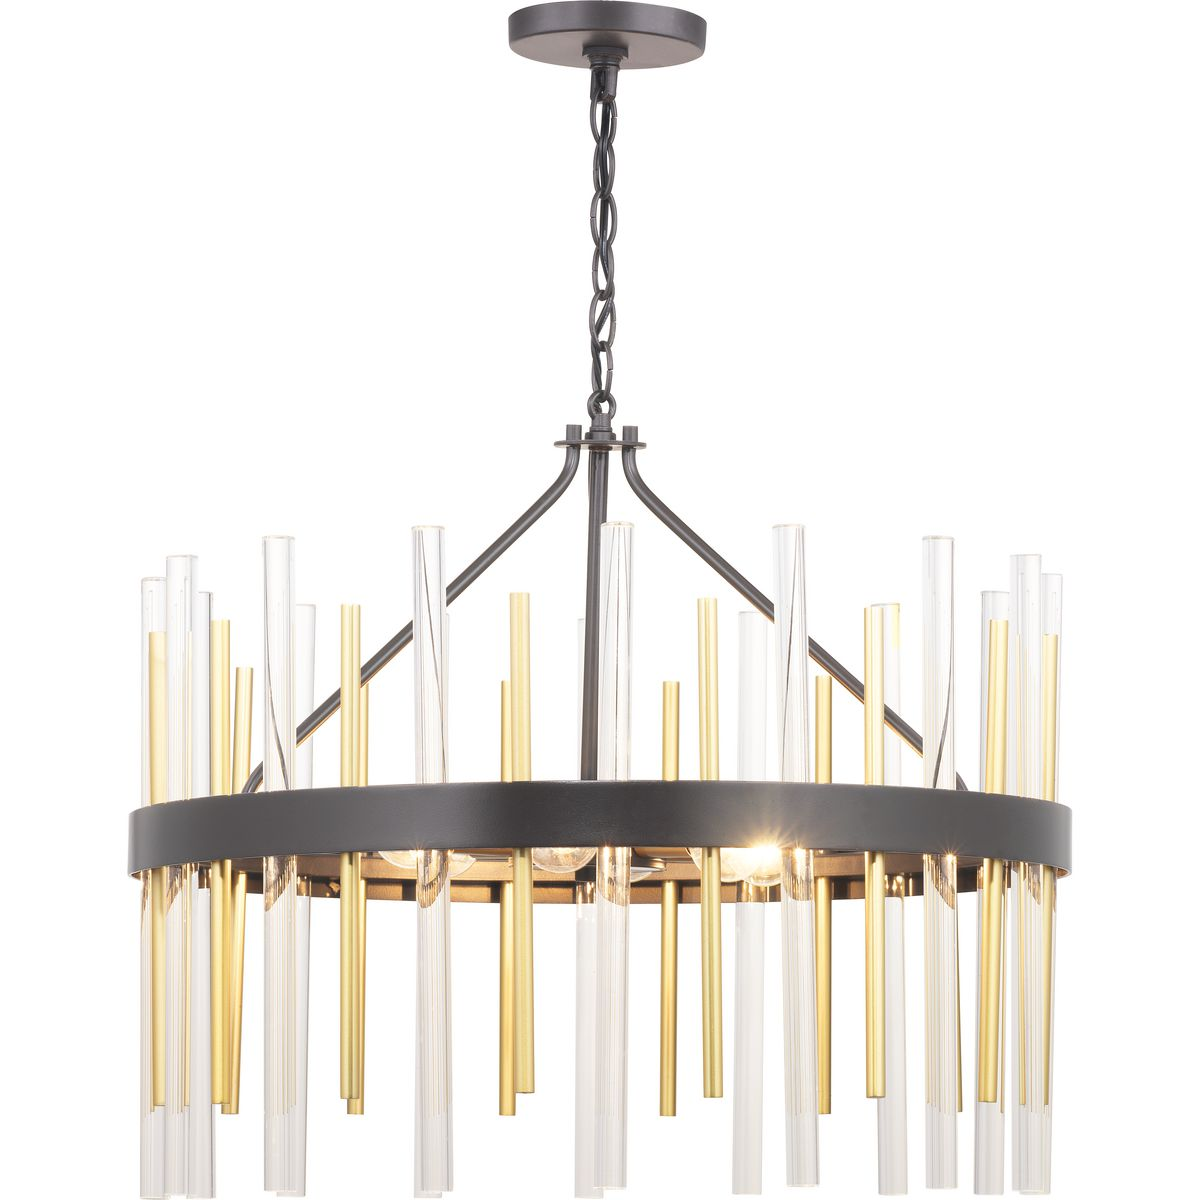 Orrizo Collection Six Light Matte Black Clear Glass Luxe Chandelier Light P400176 031 Progress Lighting